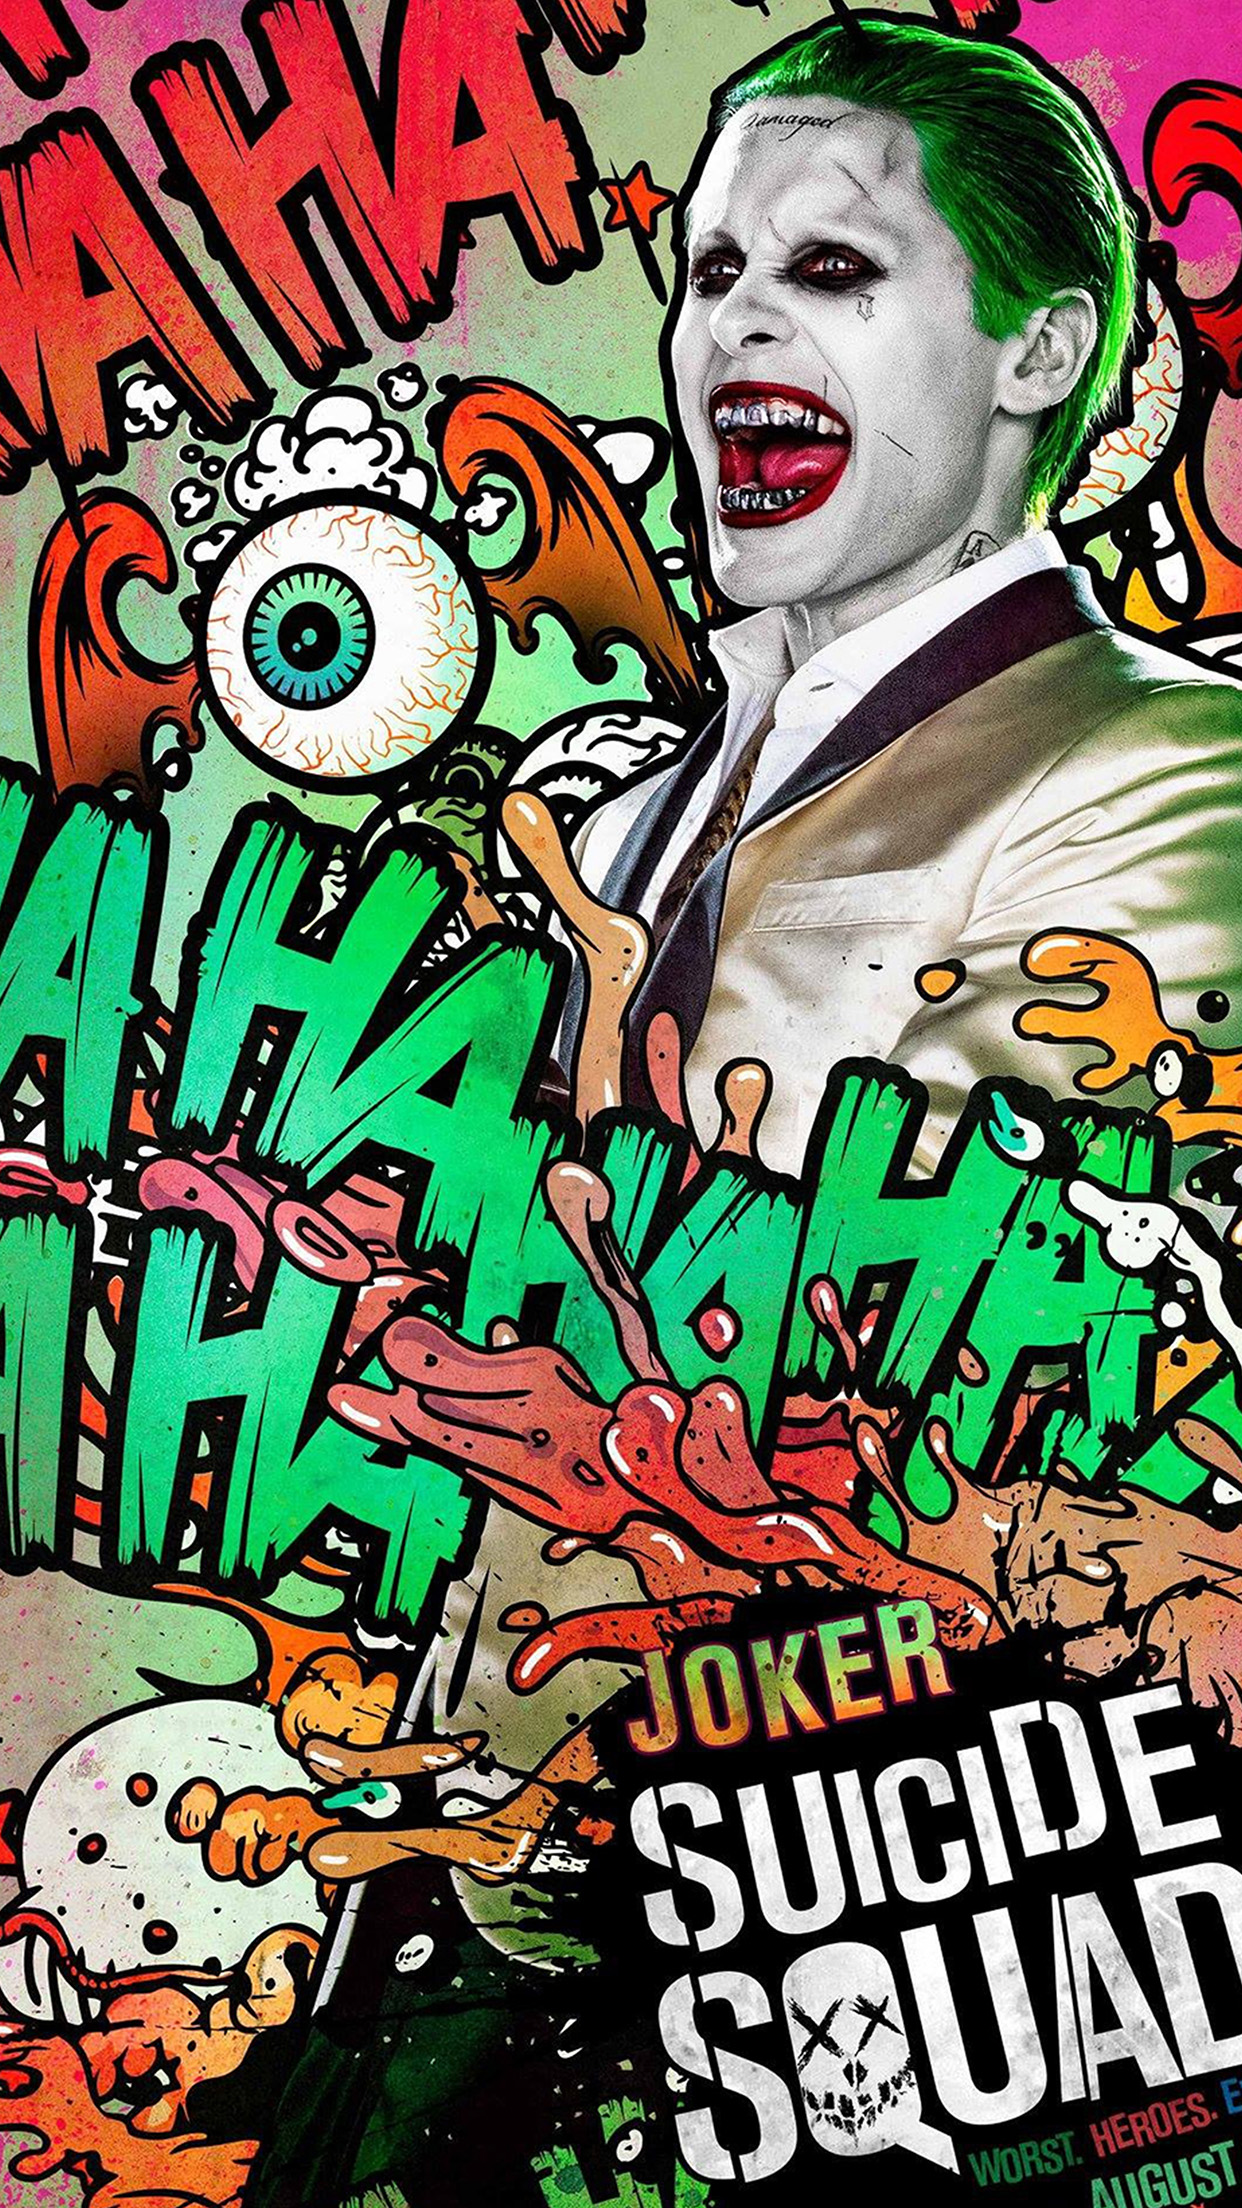 suicide squad film poster art illustration joker android wallpaper android hd wallpapers